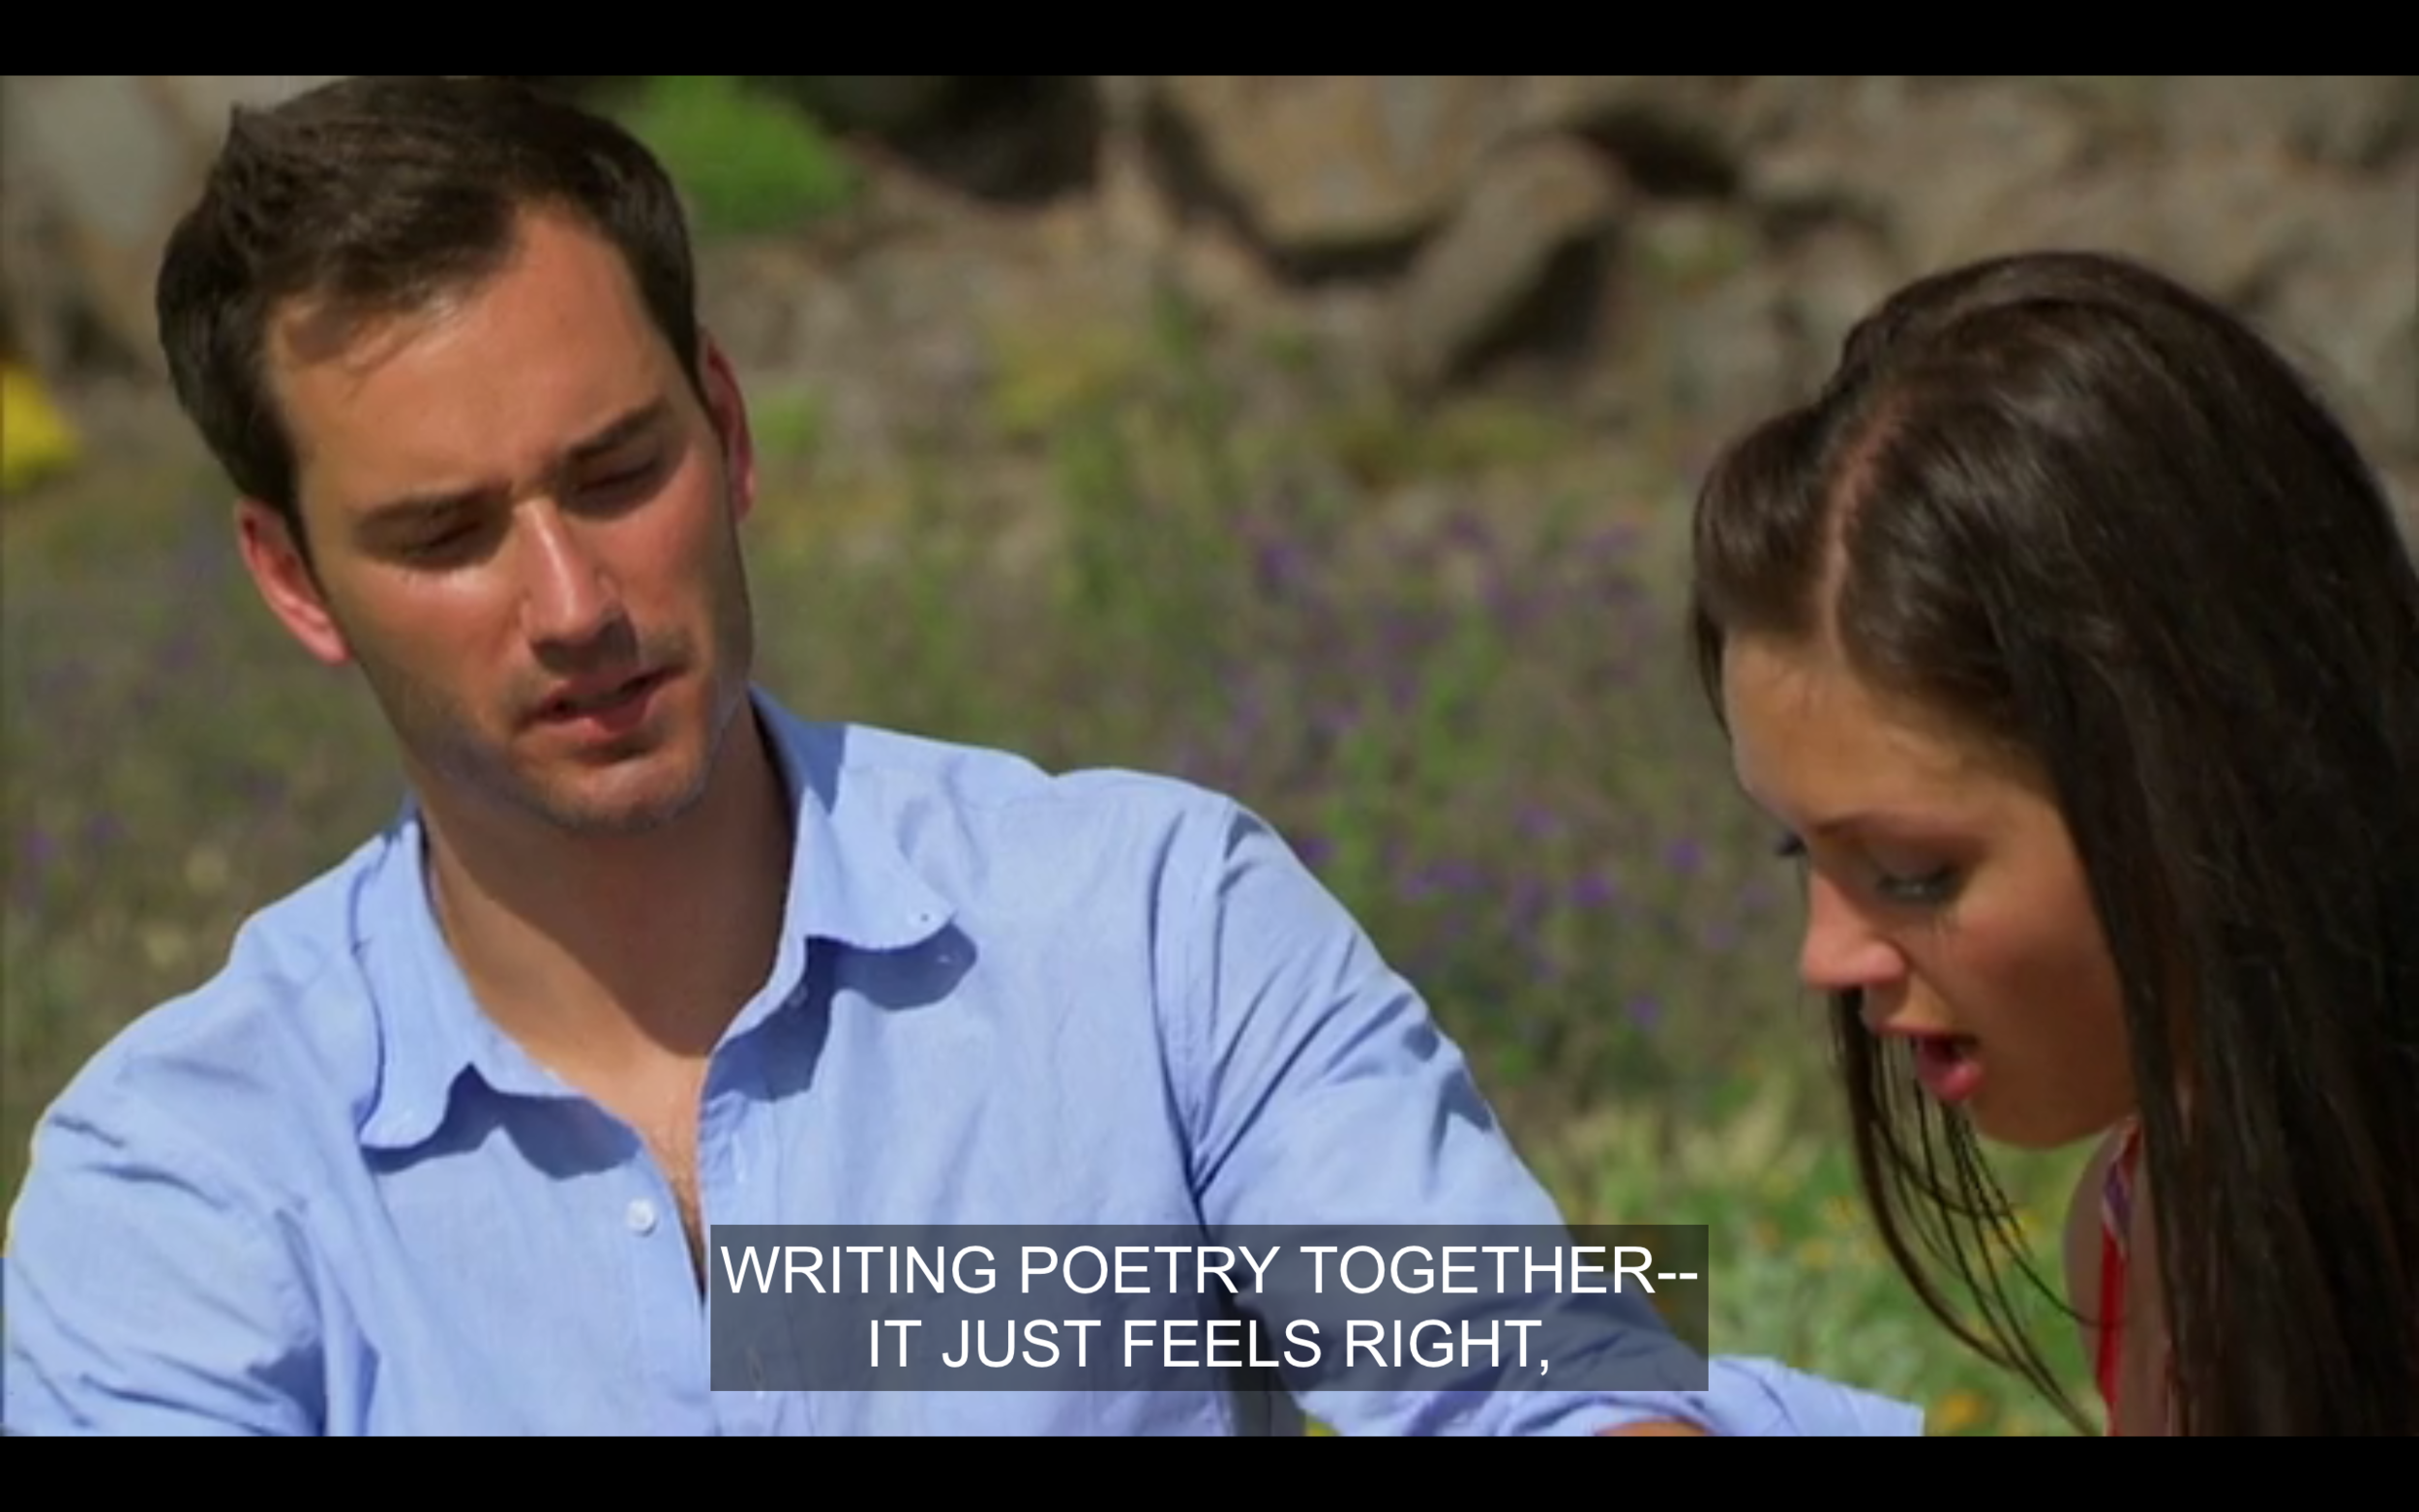 Writing poetry together.png